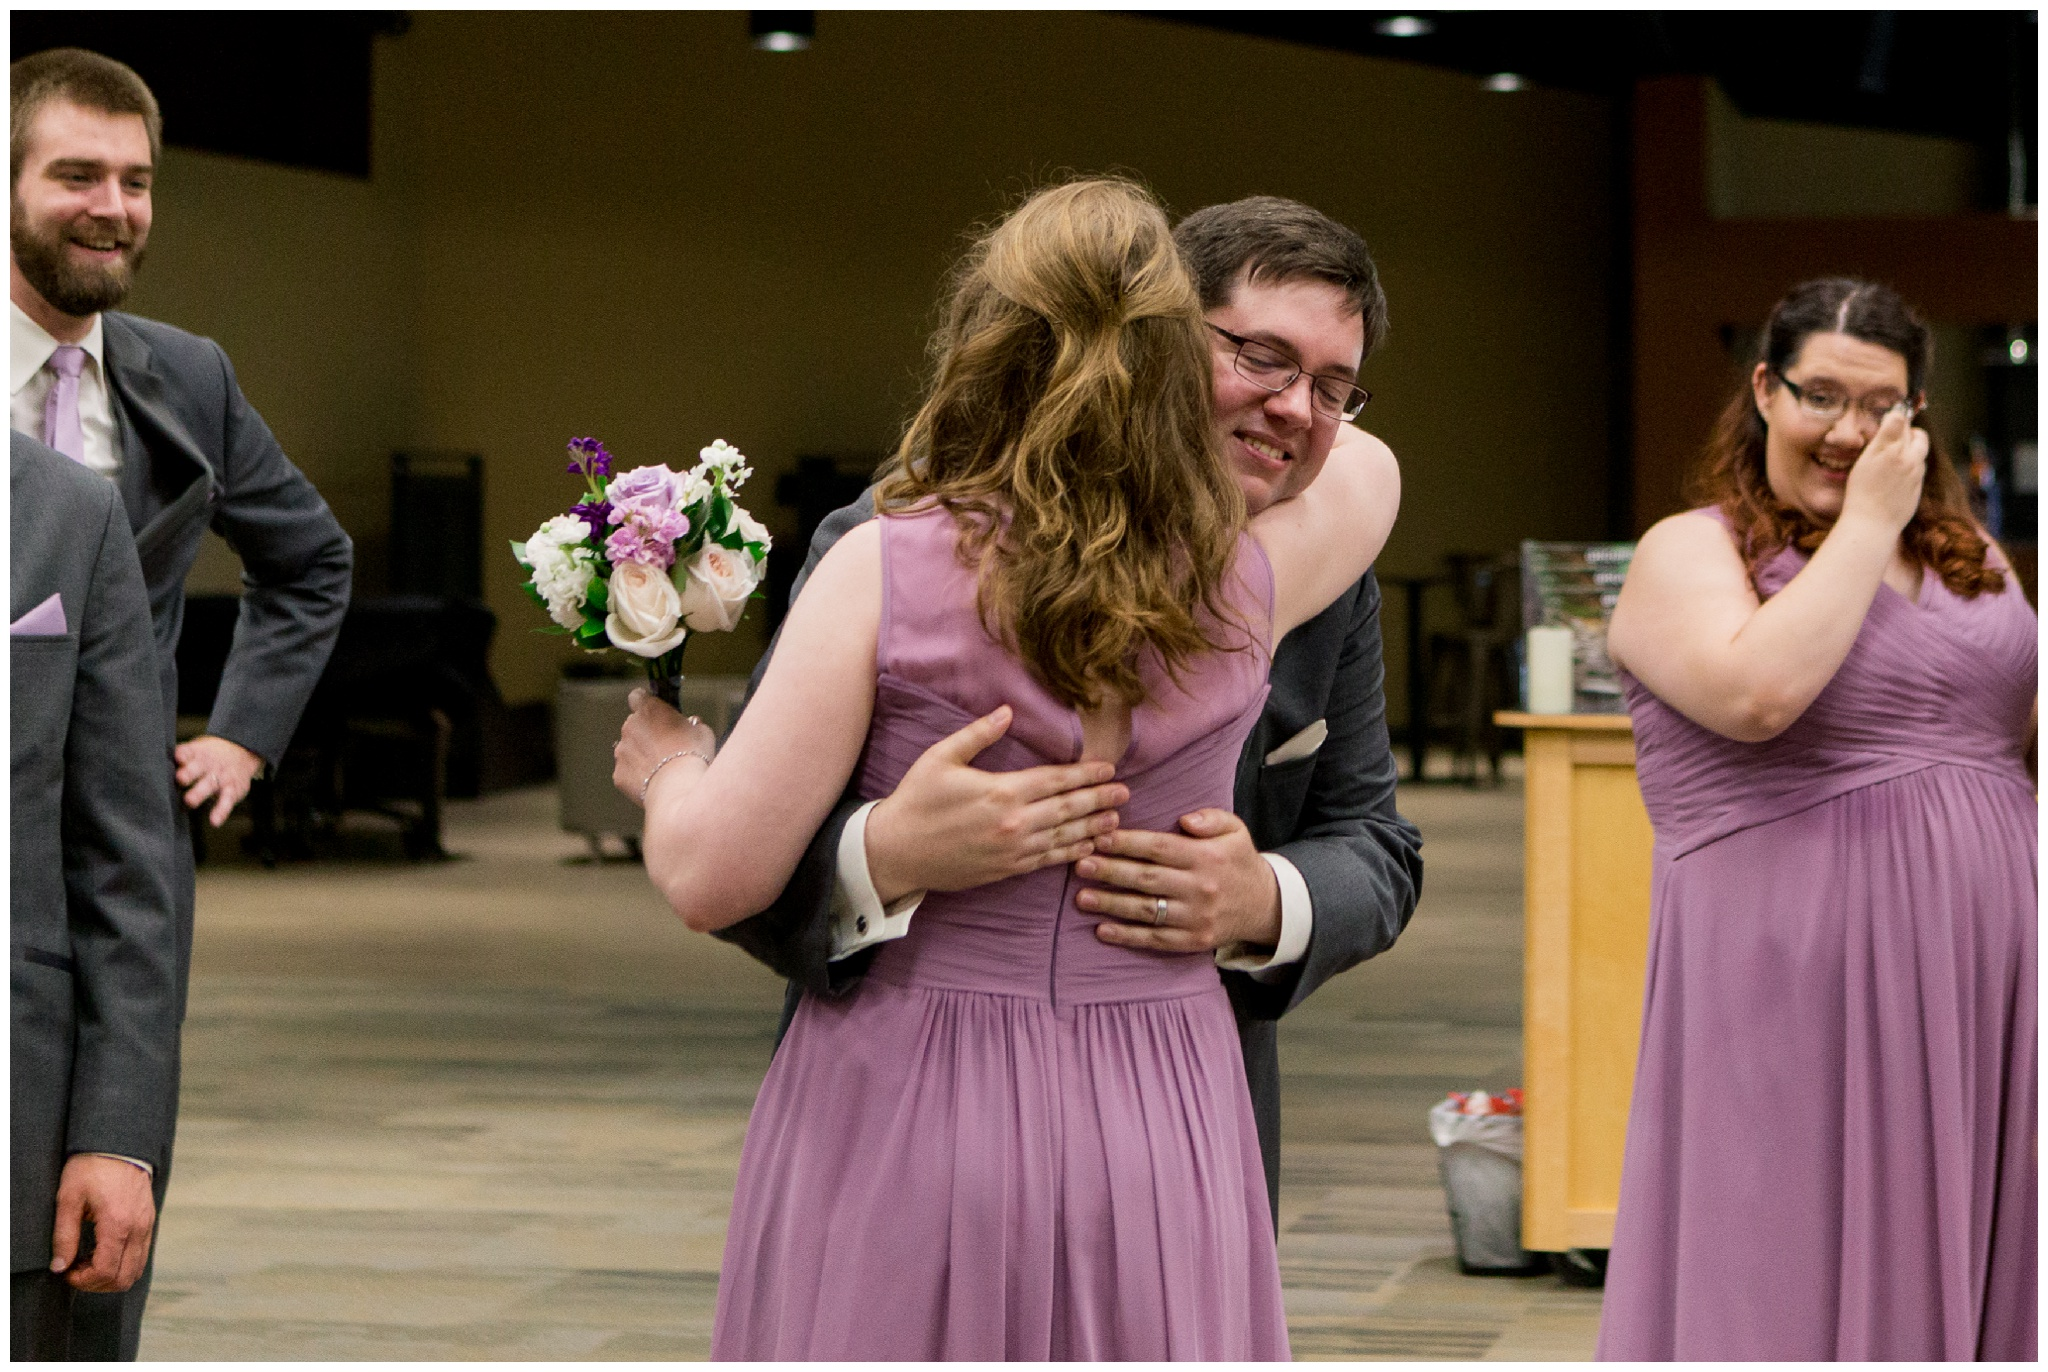 groom hugging sister in law after wedding ceremony at Crossroads Community Church in Kokomo Indiana